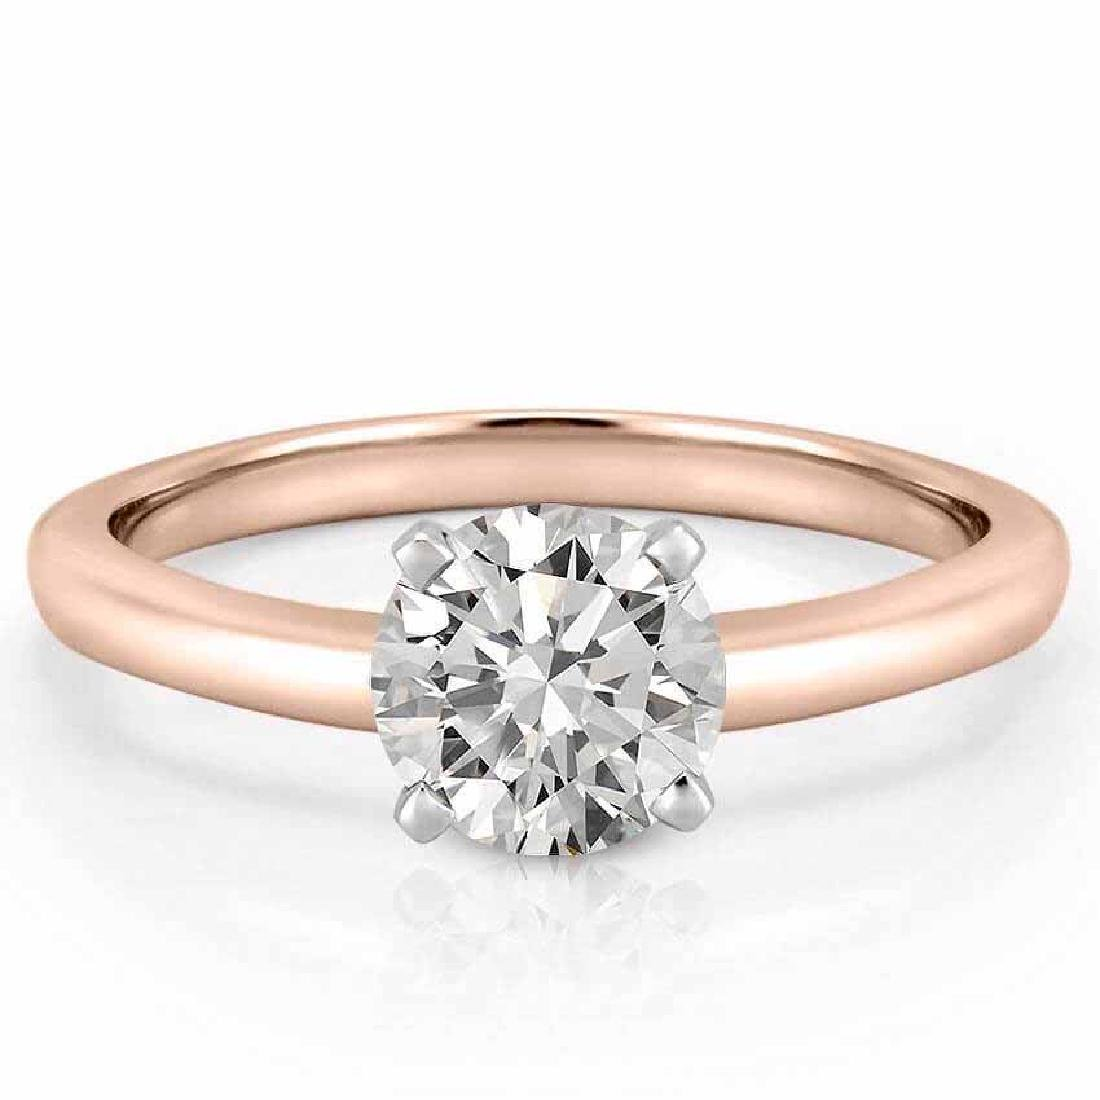 CERTIFIED 1.51 CTW D/VS2 ROUND DIAMOND SOLITAIRE RING I